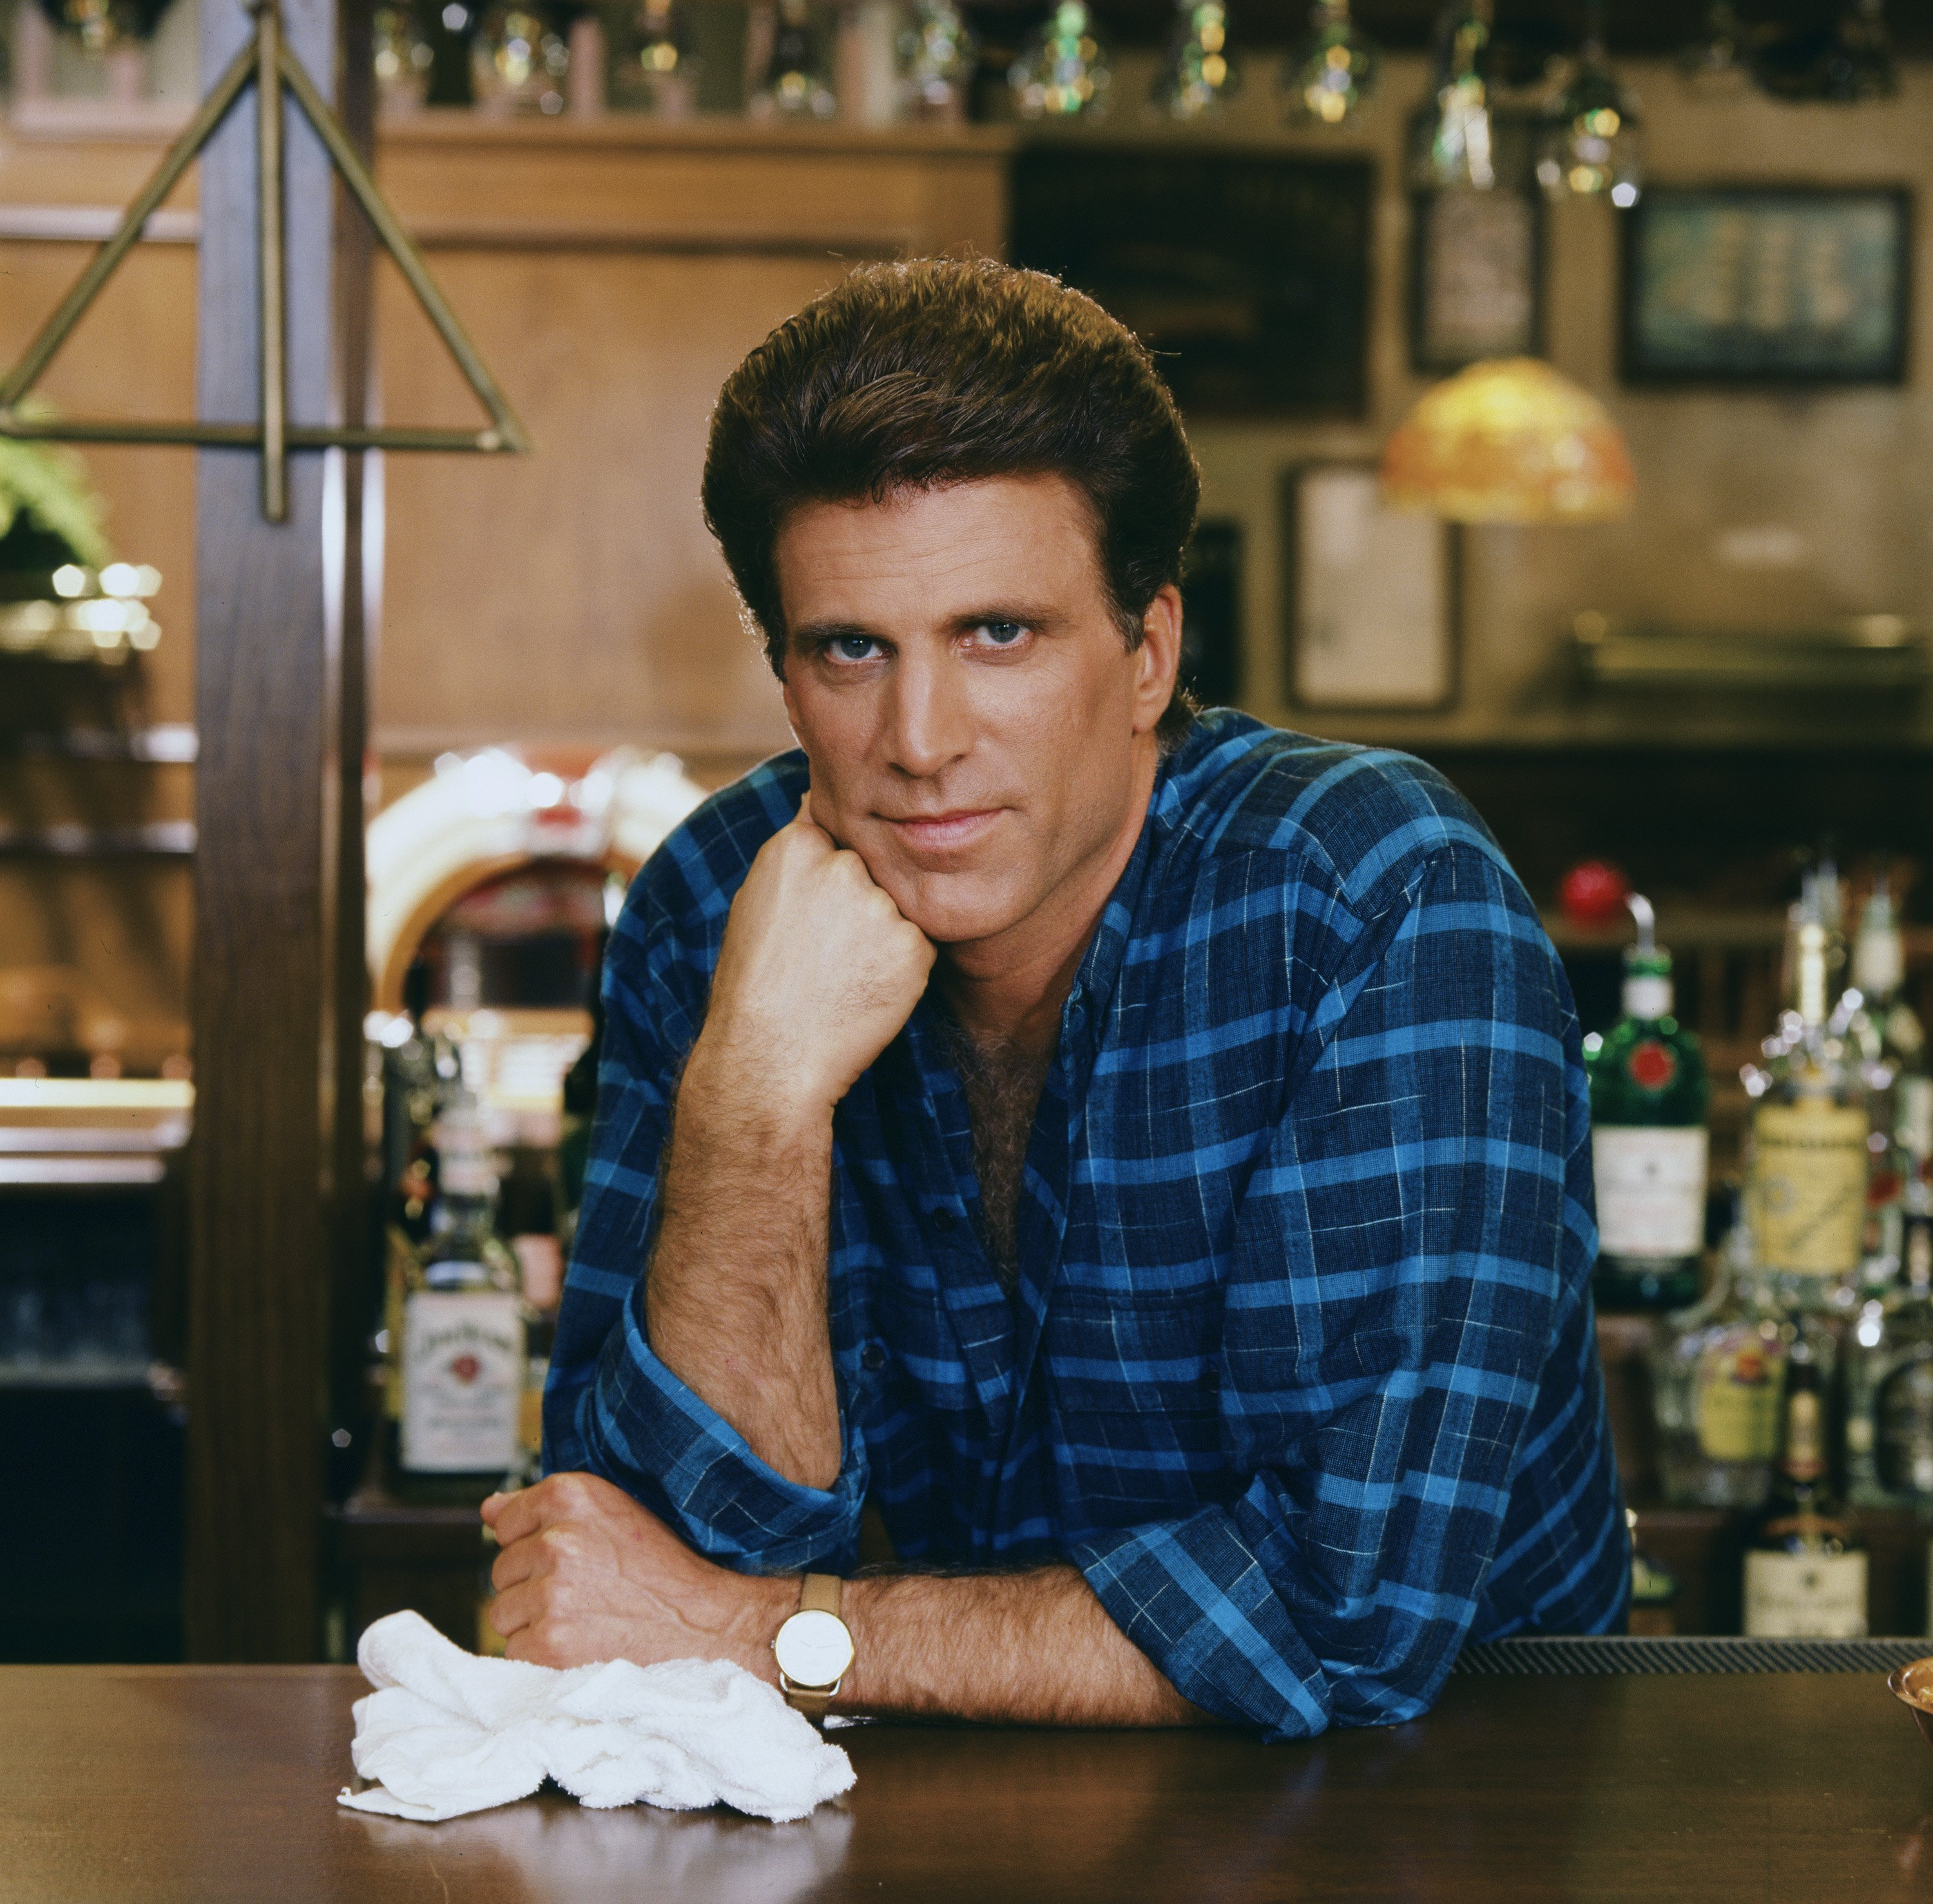 Cheer star Ted Danson poses for a portrait in October 1983 in Los Angeles, California. | Source: Getty Images